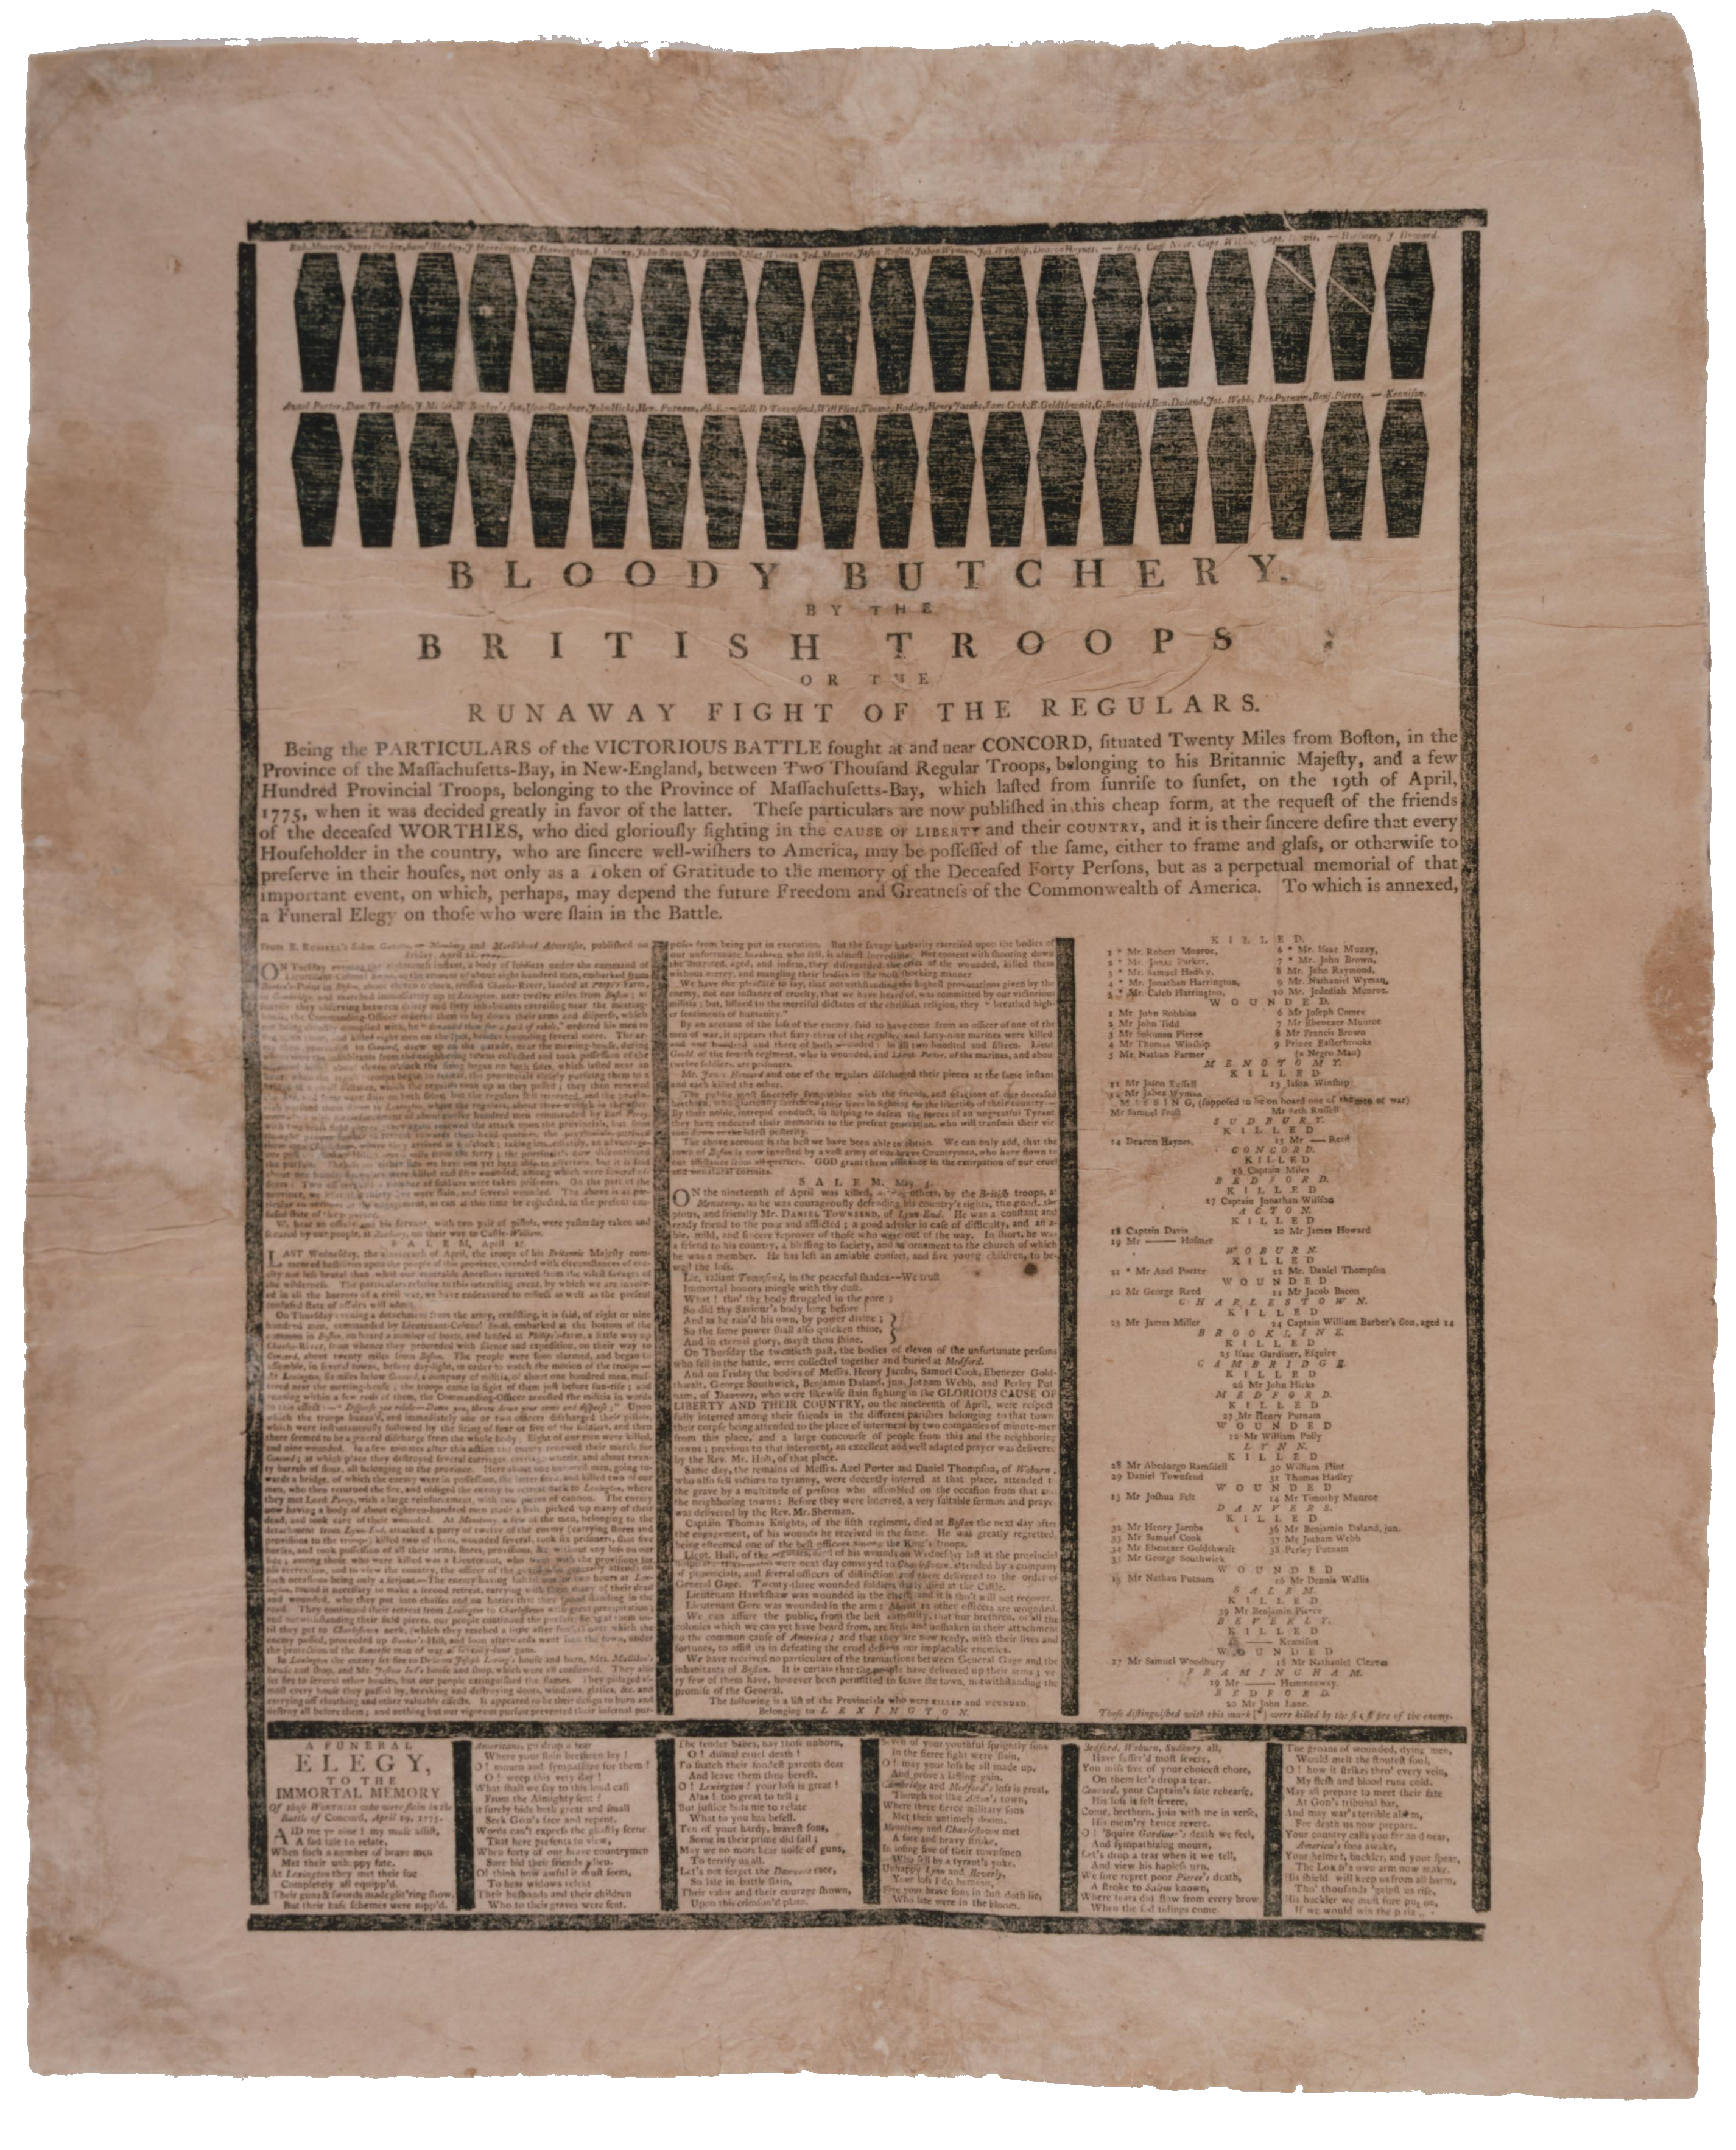 Lexington and Concord broadside, 1775. (GLC 4810 detail. The Gilder Lehrman Collection, on deposit at the Pierpont Morgan Library).